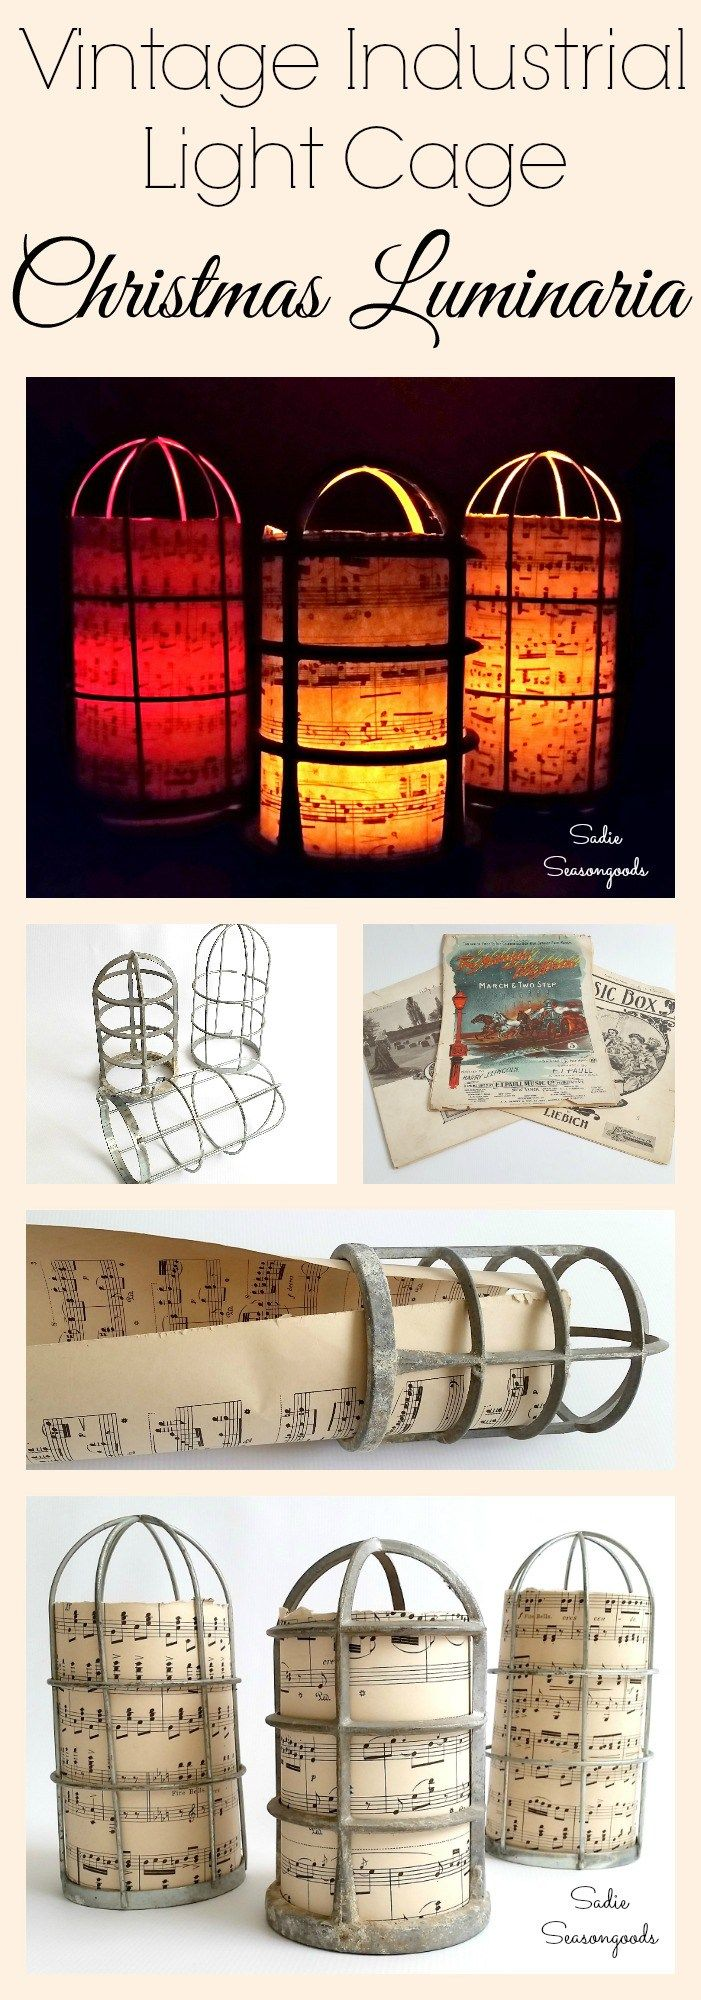 226940 Best Diy Home Decor Ideas Images On Pinterest Home Diy And Projects